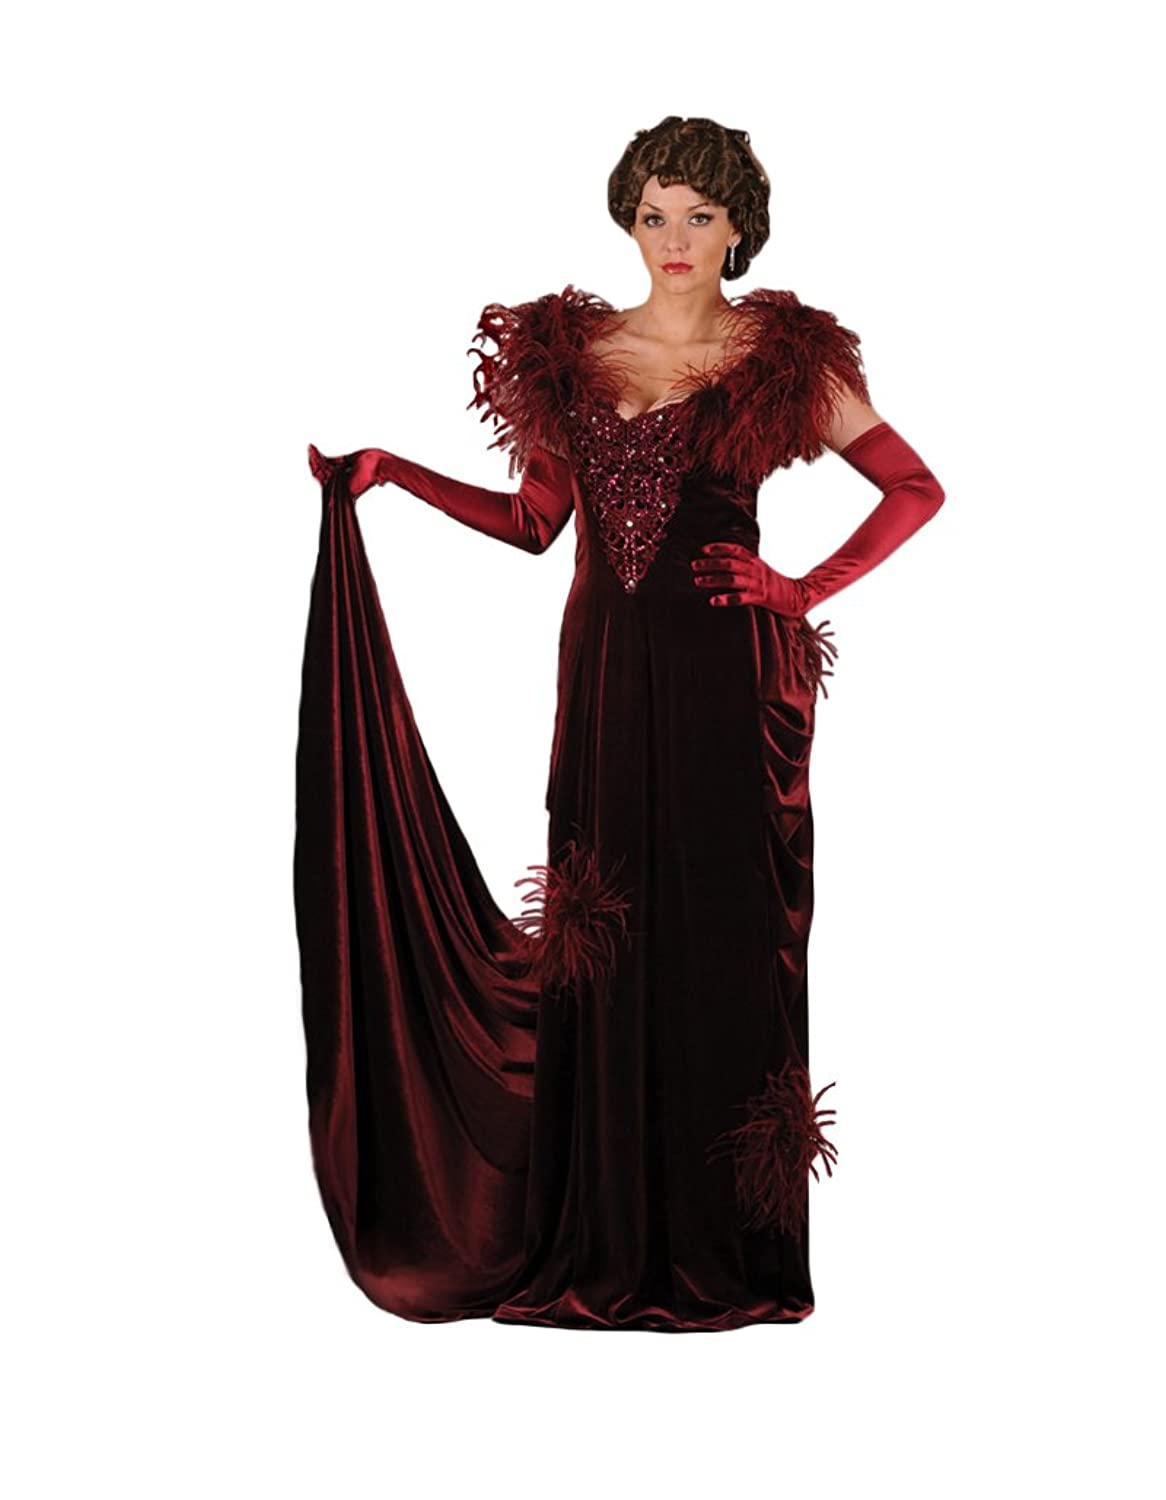 Victorian Costume Dresses & Skirts for Sale  Scarlett OHara Burgundy Gown Theater Costume- LIMITED QUANTITY $499.99 AT vintagedancer.com